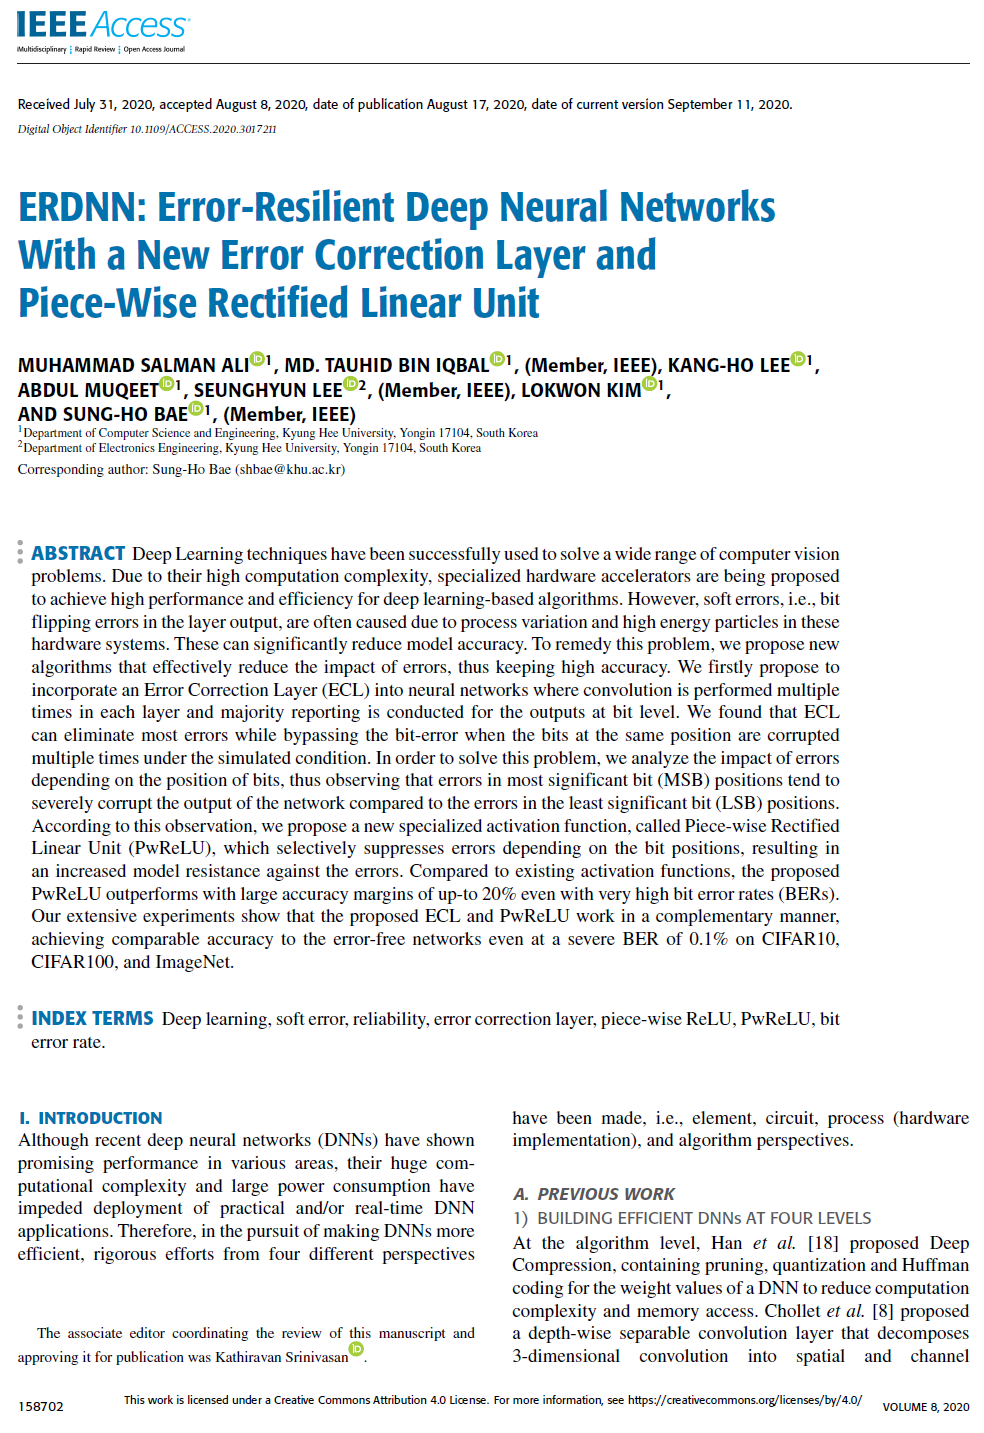 ERDNN: Error-Resilient Deep Neural Networks With a New Error Correction Layer and Piece-Wise Rectified Linear Unit